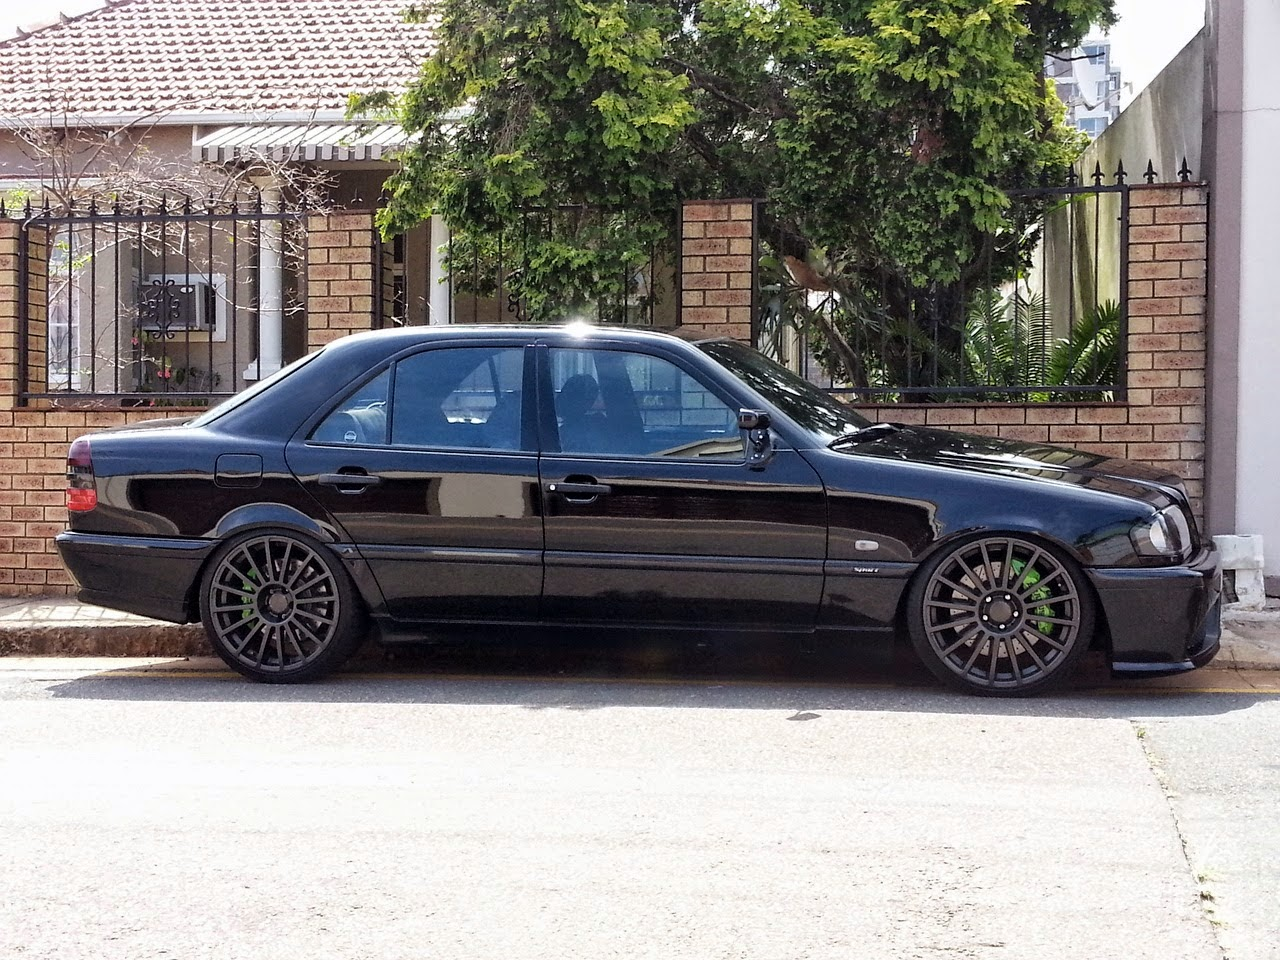 Exclusive Car Wallpapers Mercedes Benz W202 Turbo Shadowline Benztuning